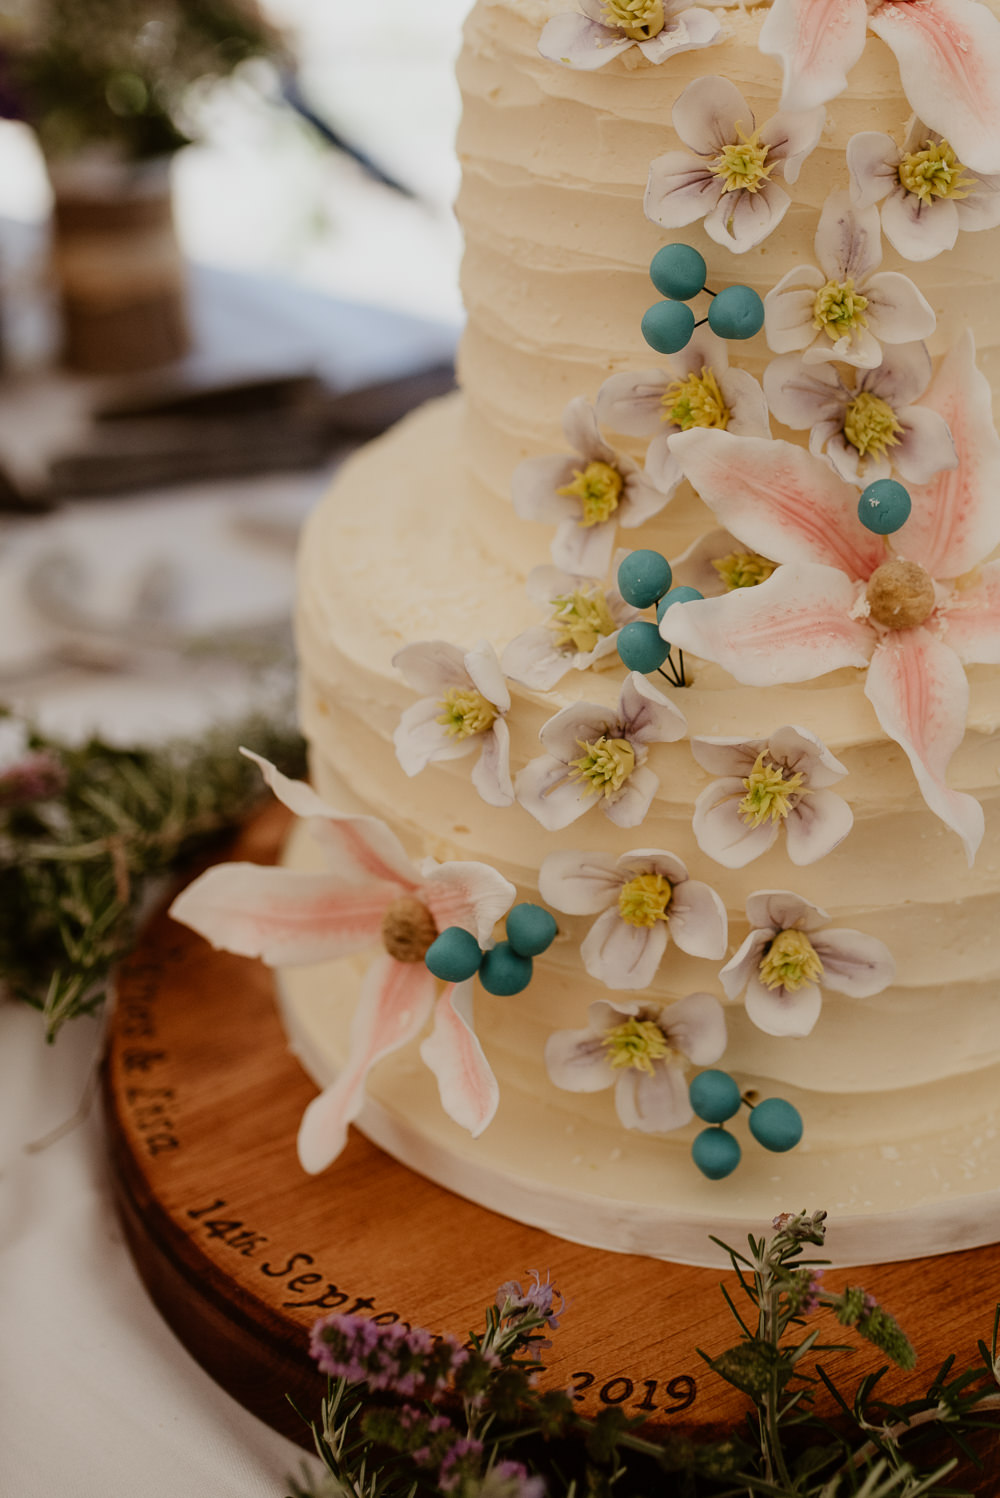 Flower Floral Buttercream Cake North Cornwall Wedding Taylor-Hughes Photography